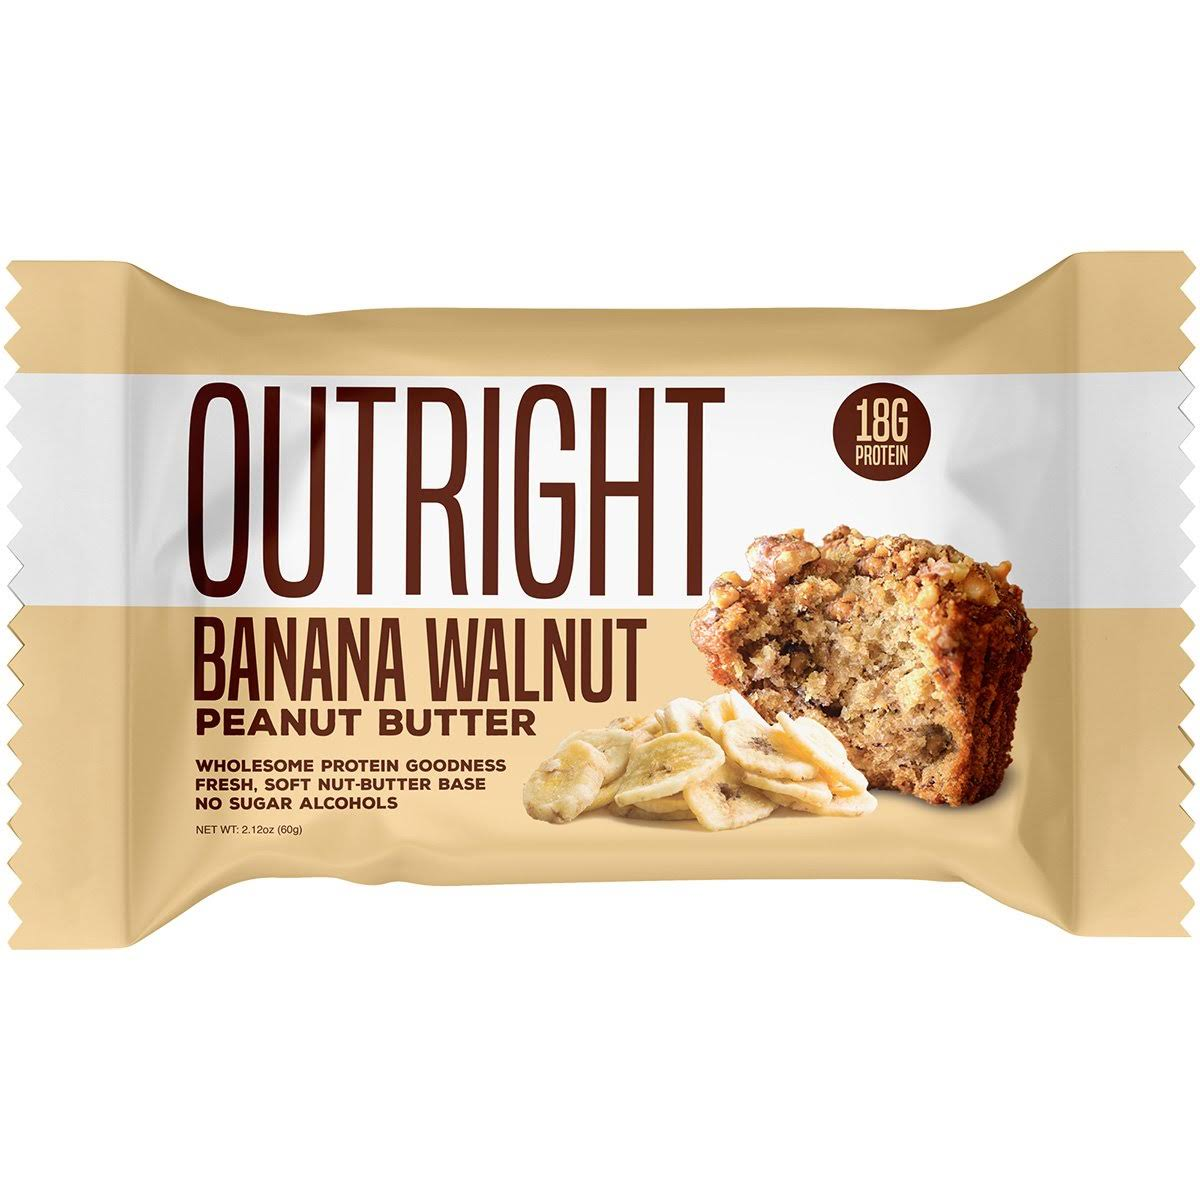 Outright Bar, Banana Walnut, Peanut Butter - 2.12 oz